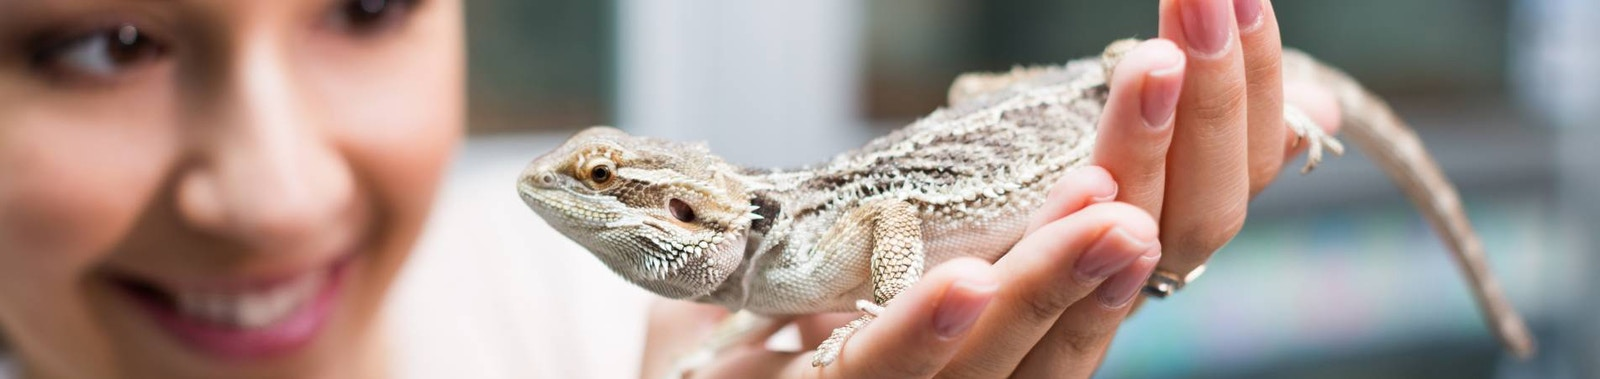 A Quick Guide to Caring for Your Reptile